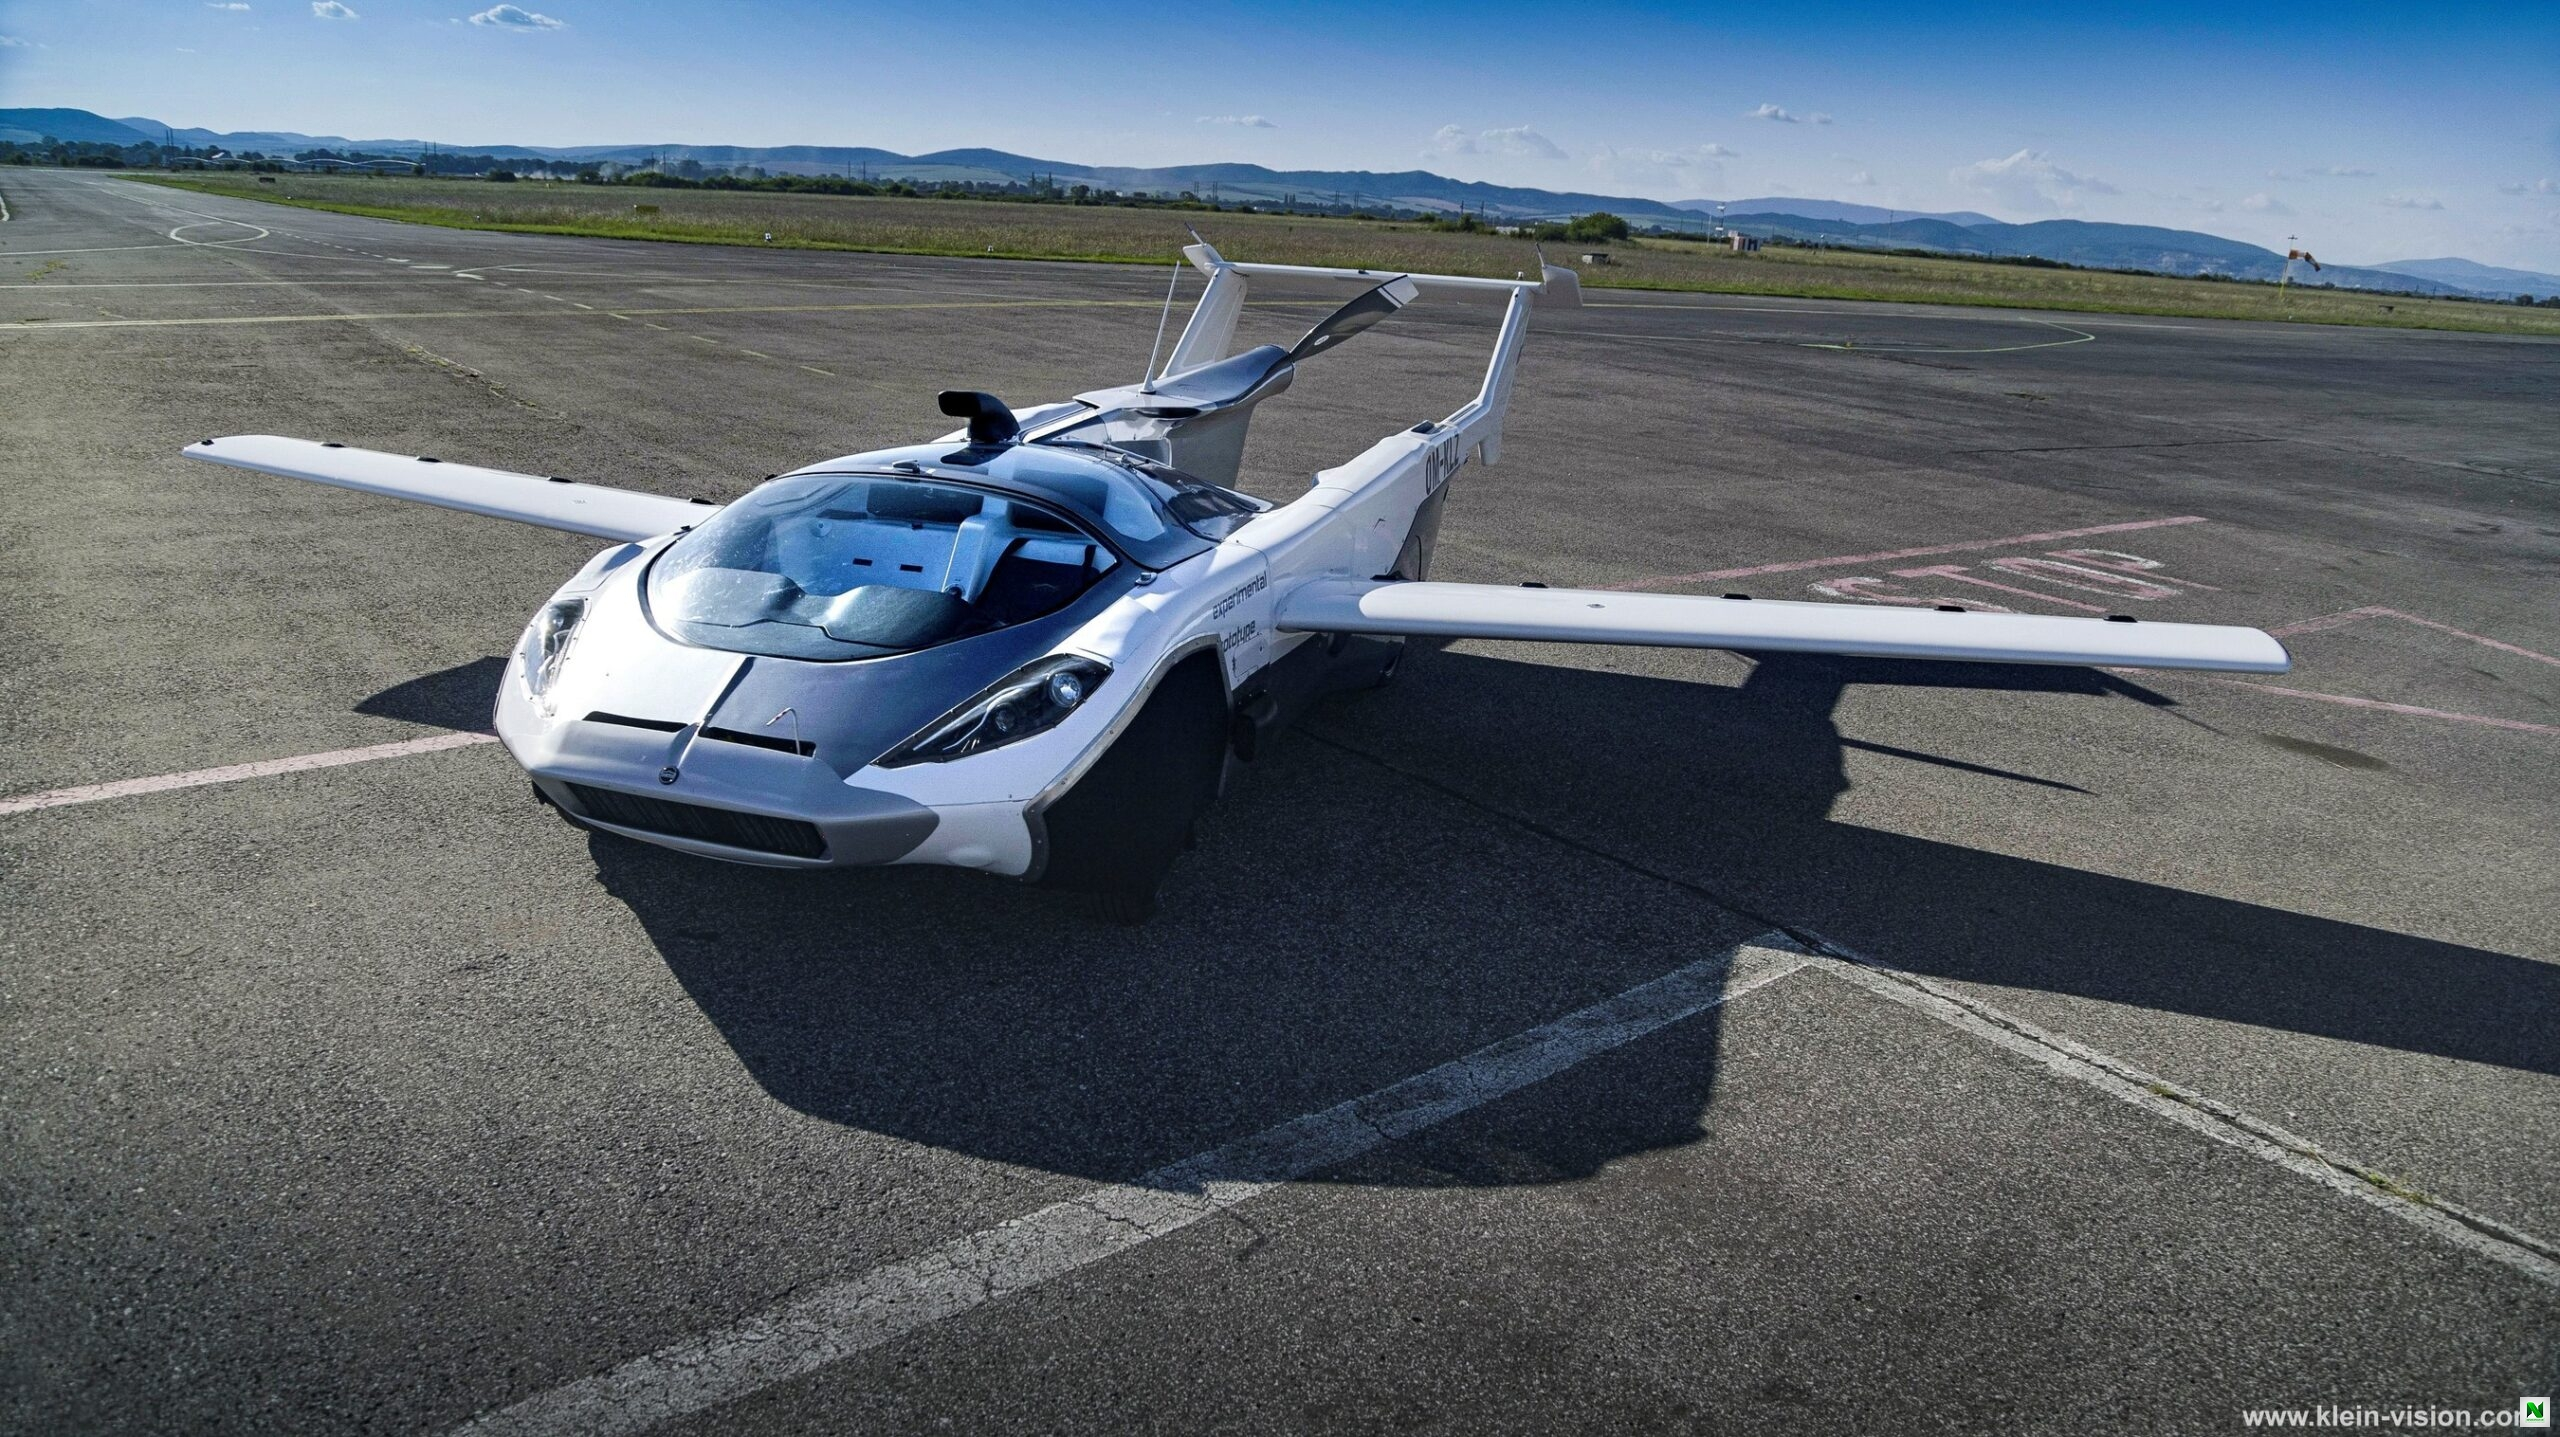 AirCar That Transforms From Road Vehicle To Plane Will Go On Sale Next Year (Pix)